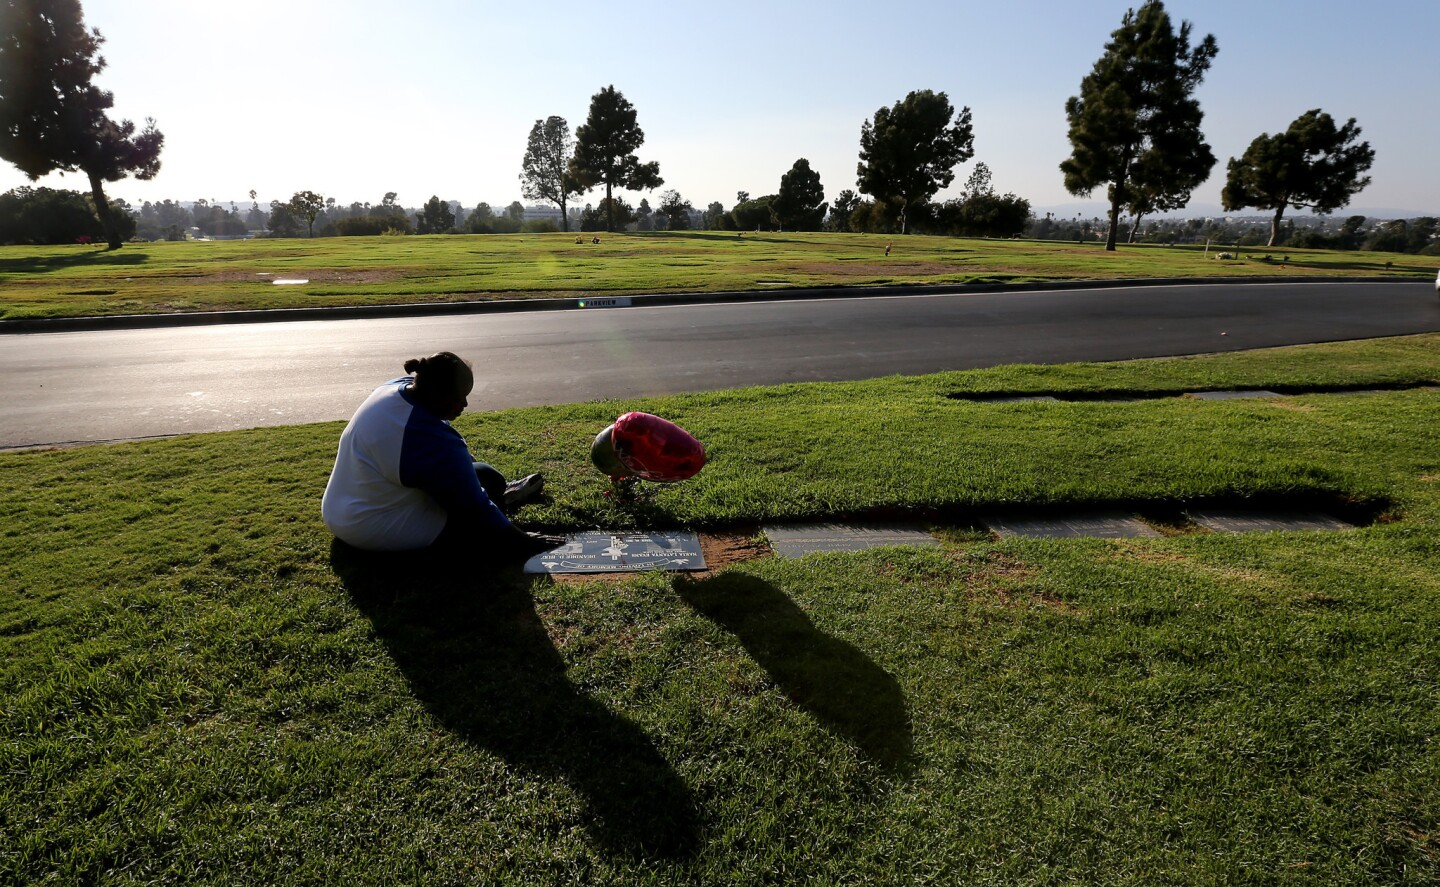 Barbara Pritchett-Hughes sits beside the grave of her son DeAndre Hughes during a visit to Inglewood Park Cemetery in October. Hughes was killed four months earlier at the age of 30. Another son, Dovon Terrell Harris, died in 2007.